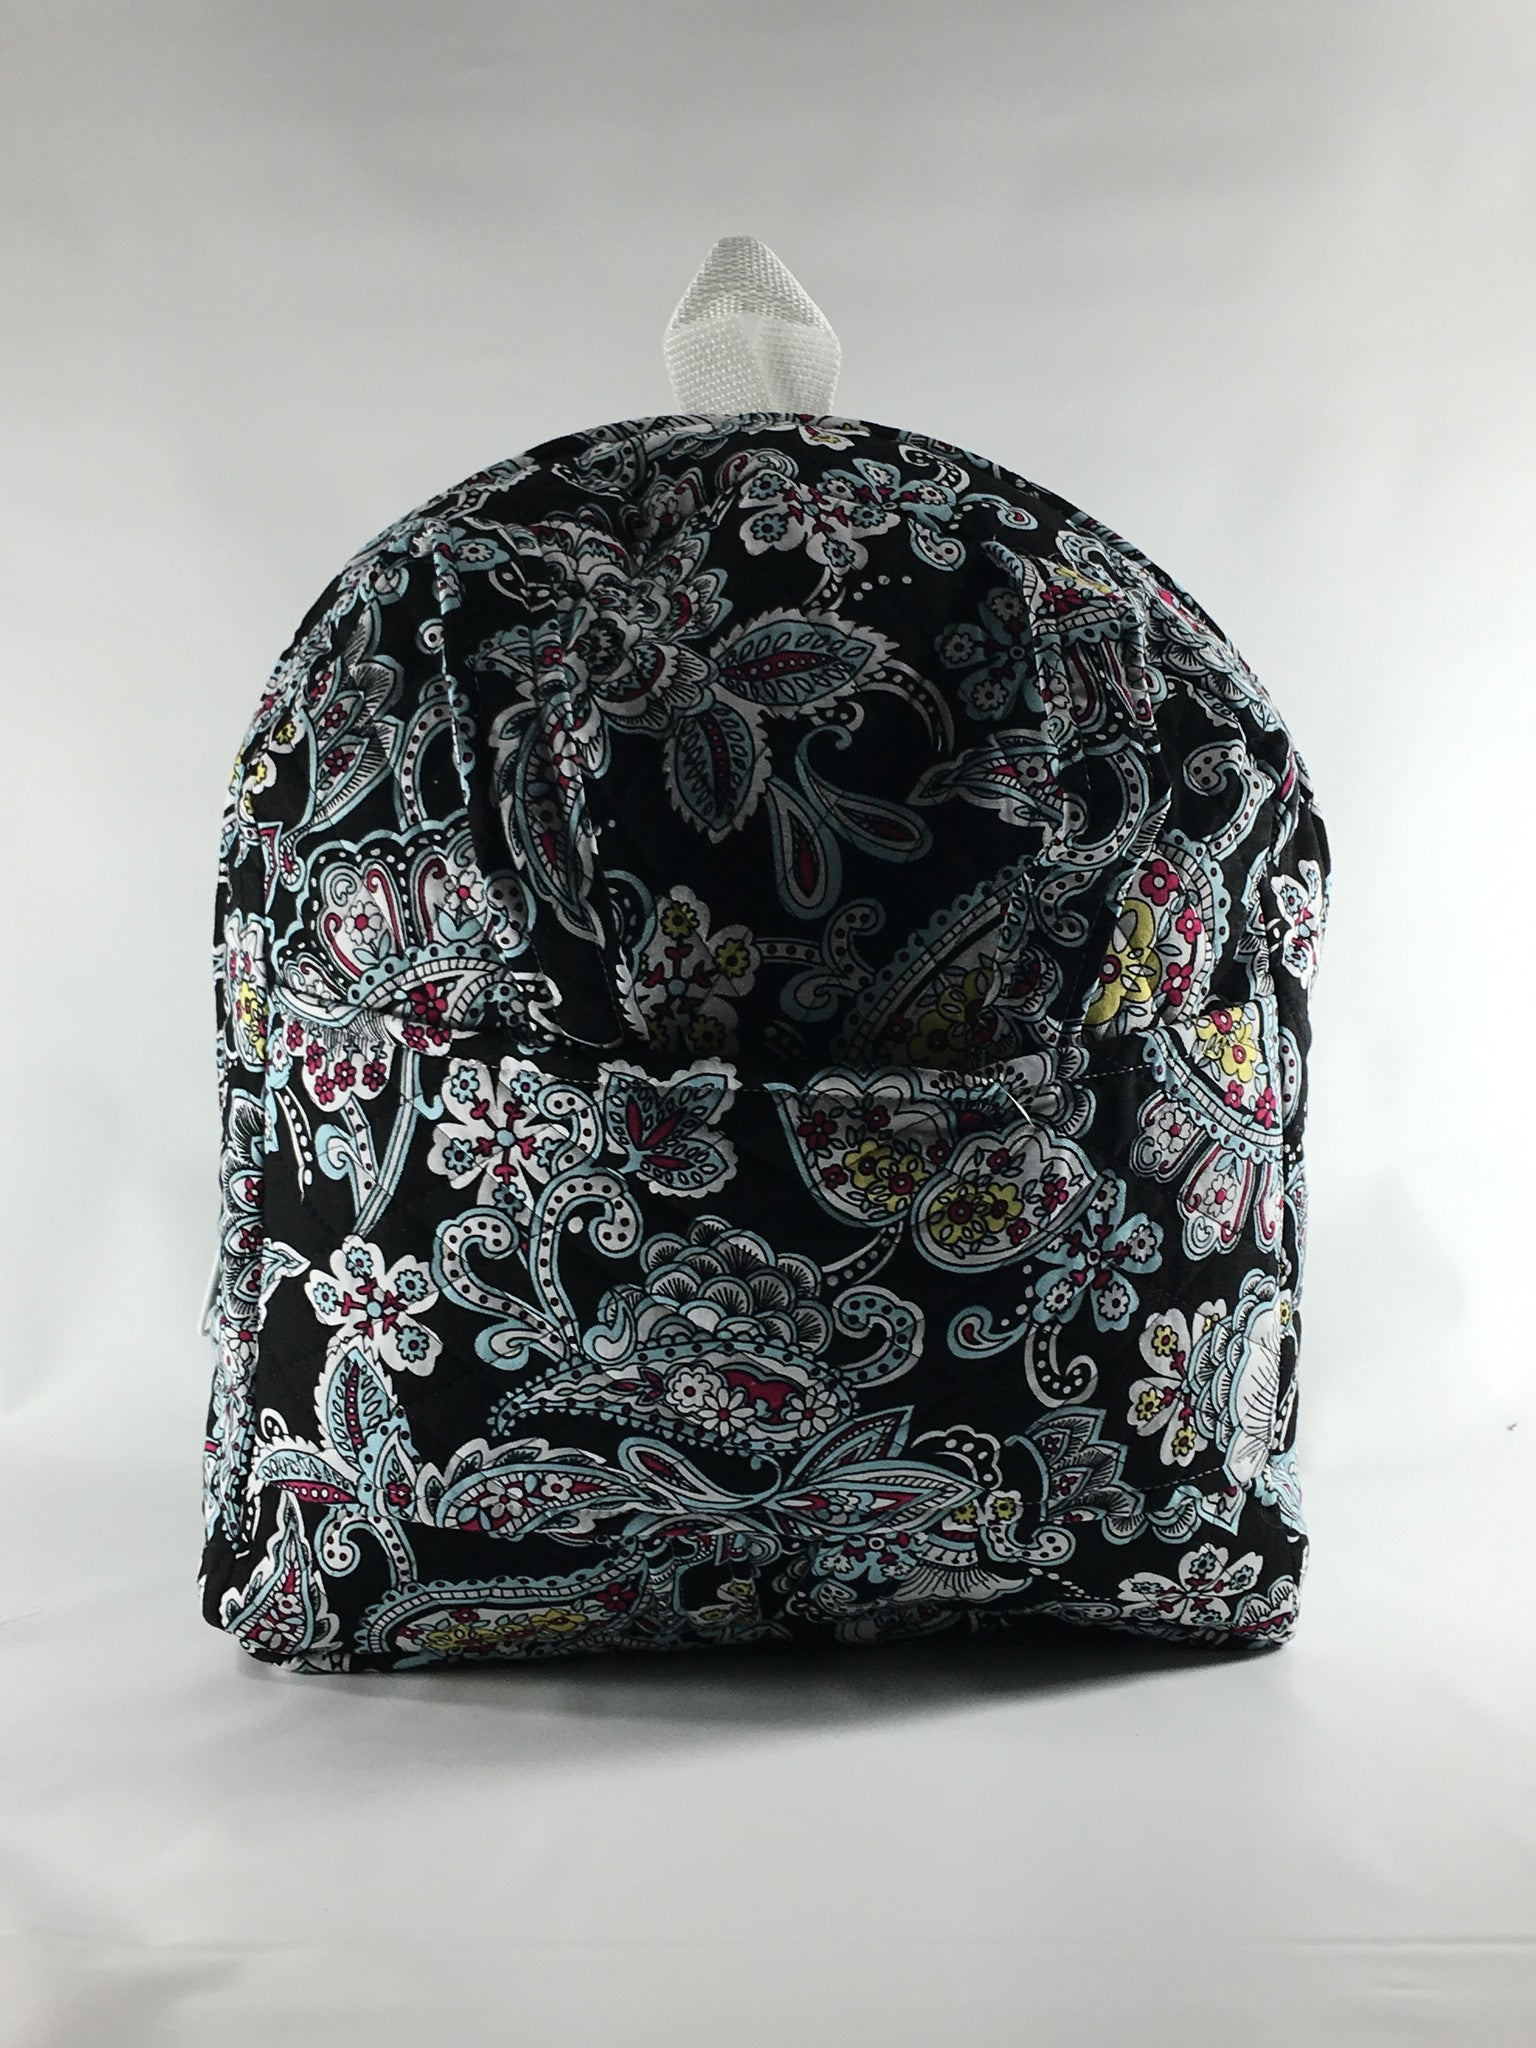 Tag Along Backpack with Doll Carrier in Multi Color Paisley Print - Buttons and Bows  - 1